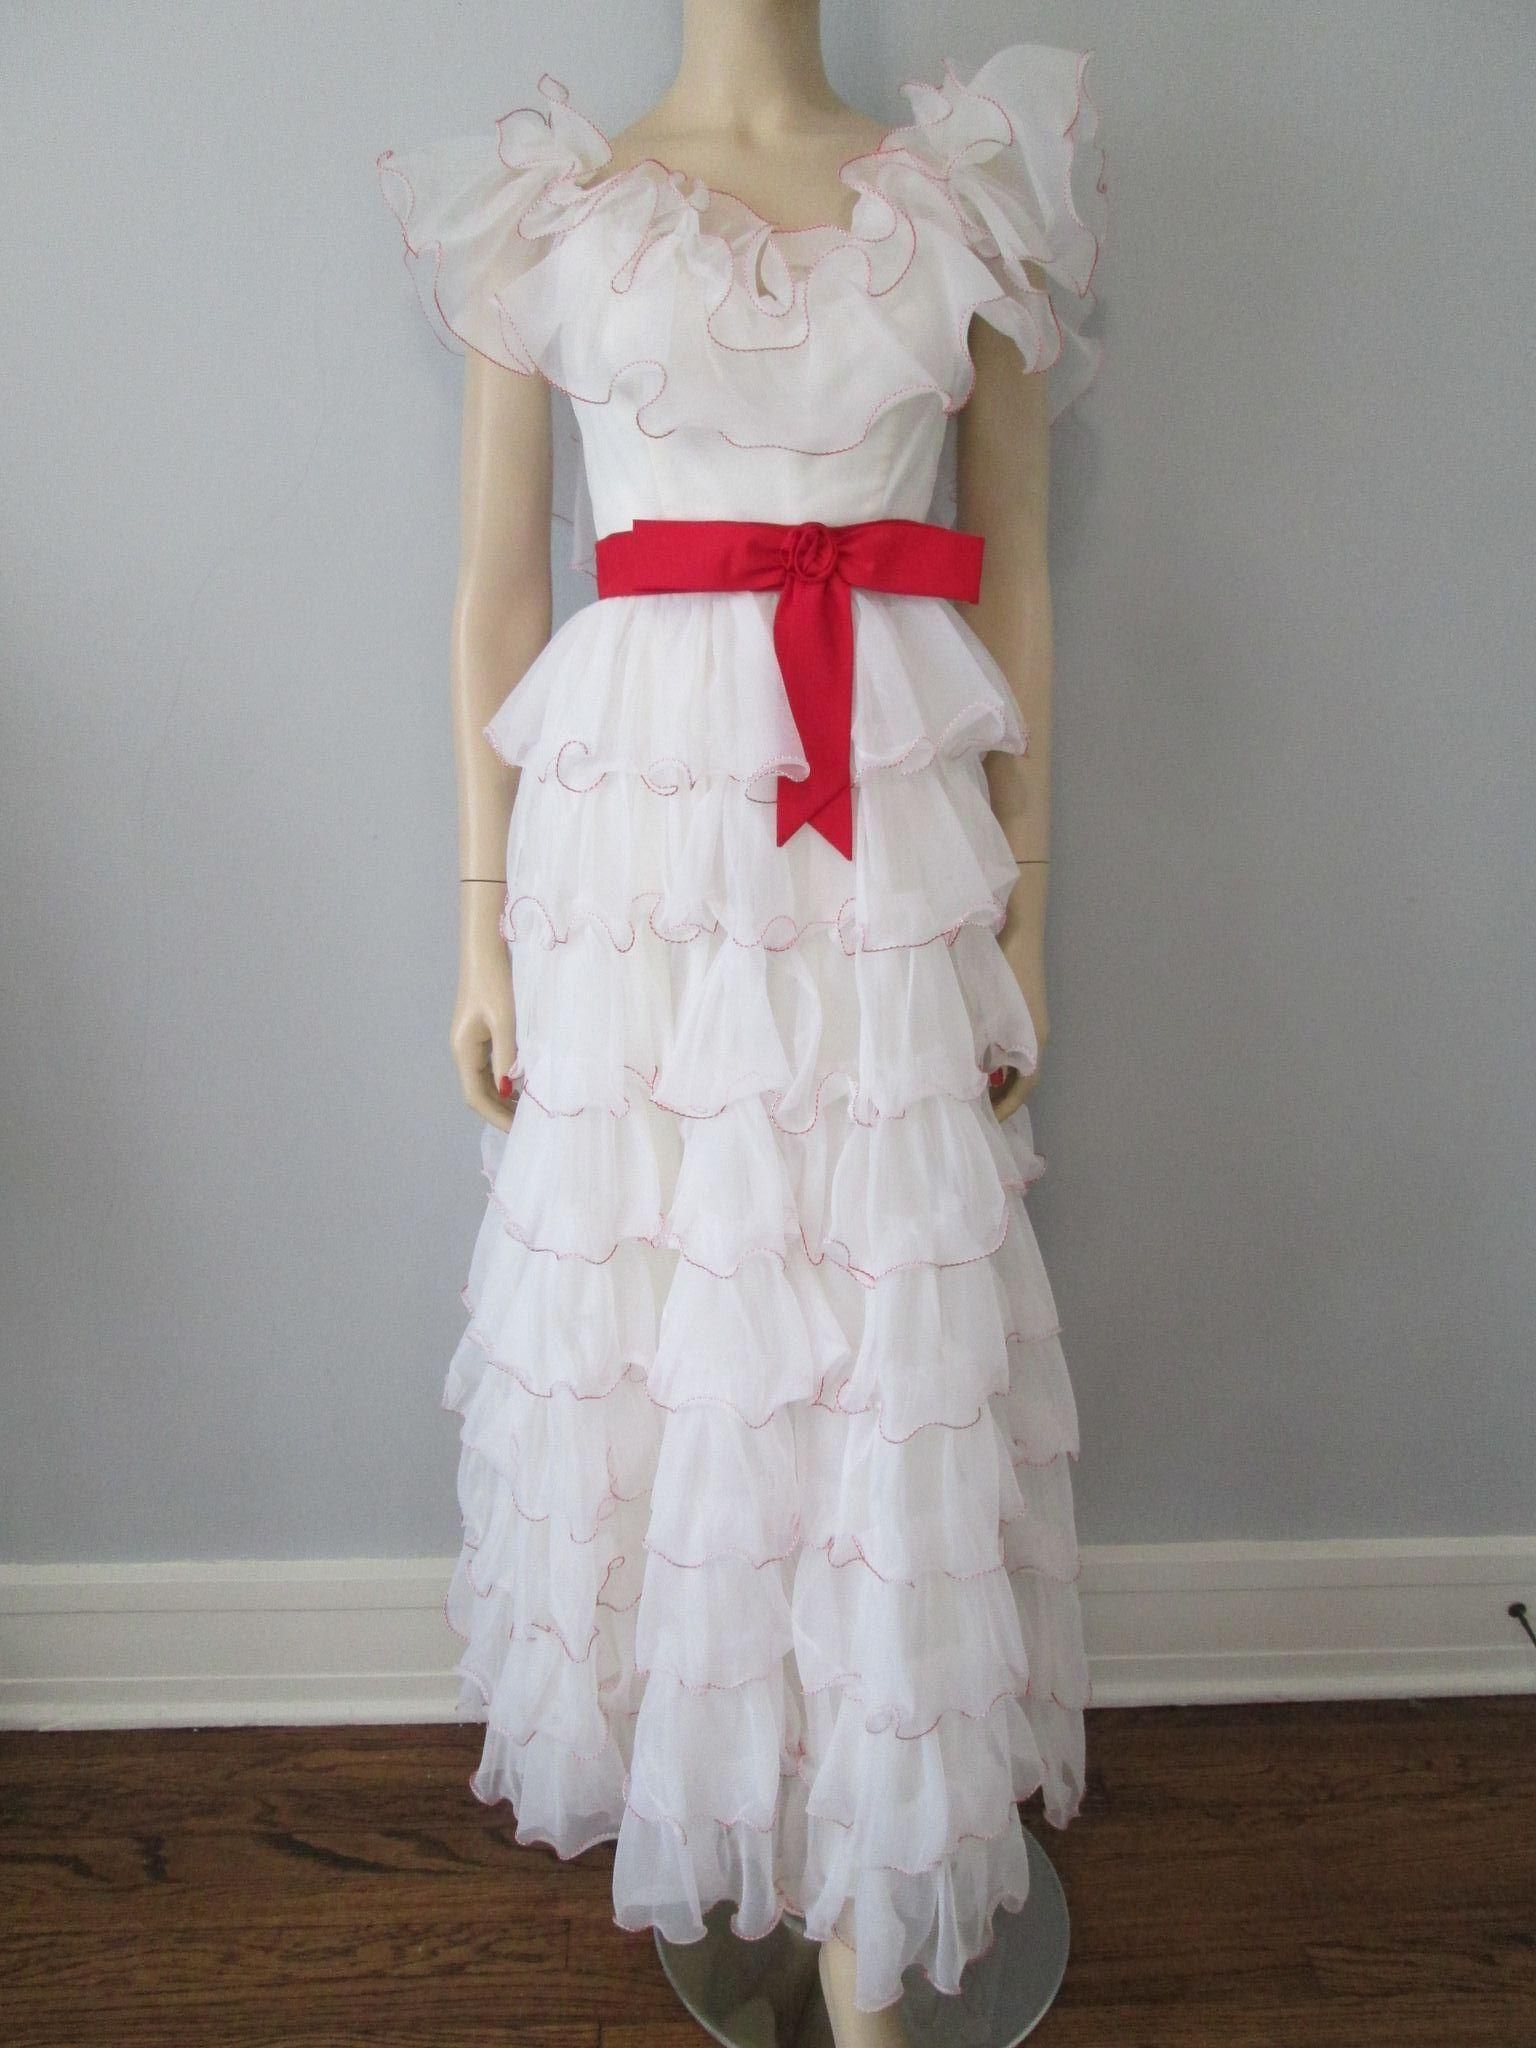 Prom dress formal gown wedding vintage s white ruffles off the